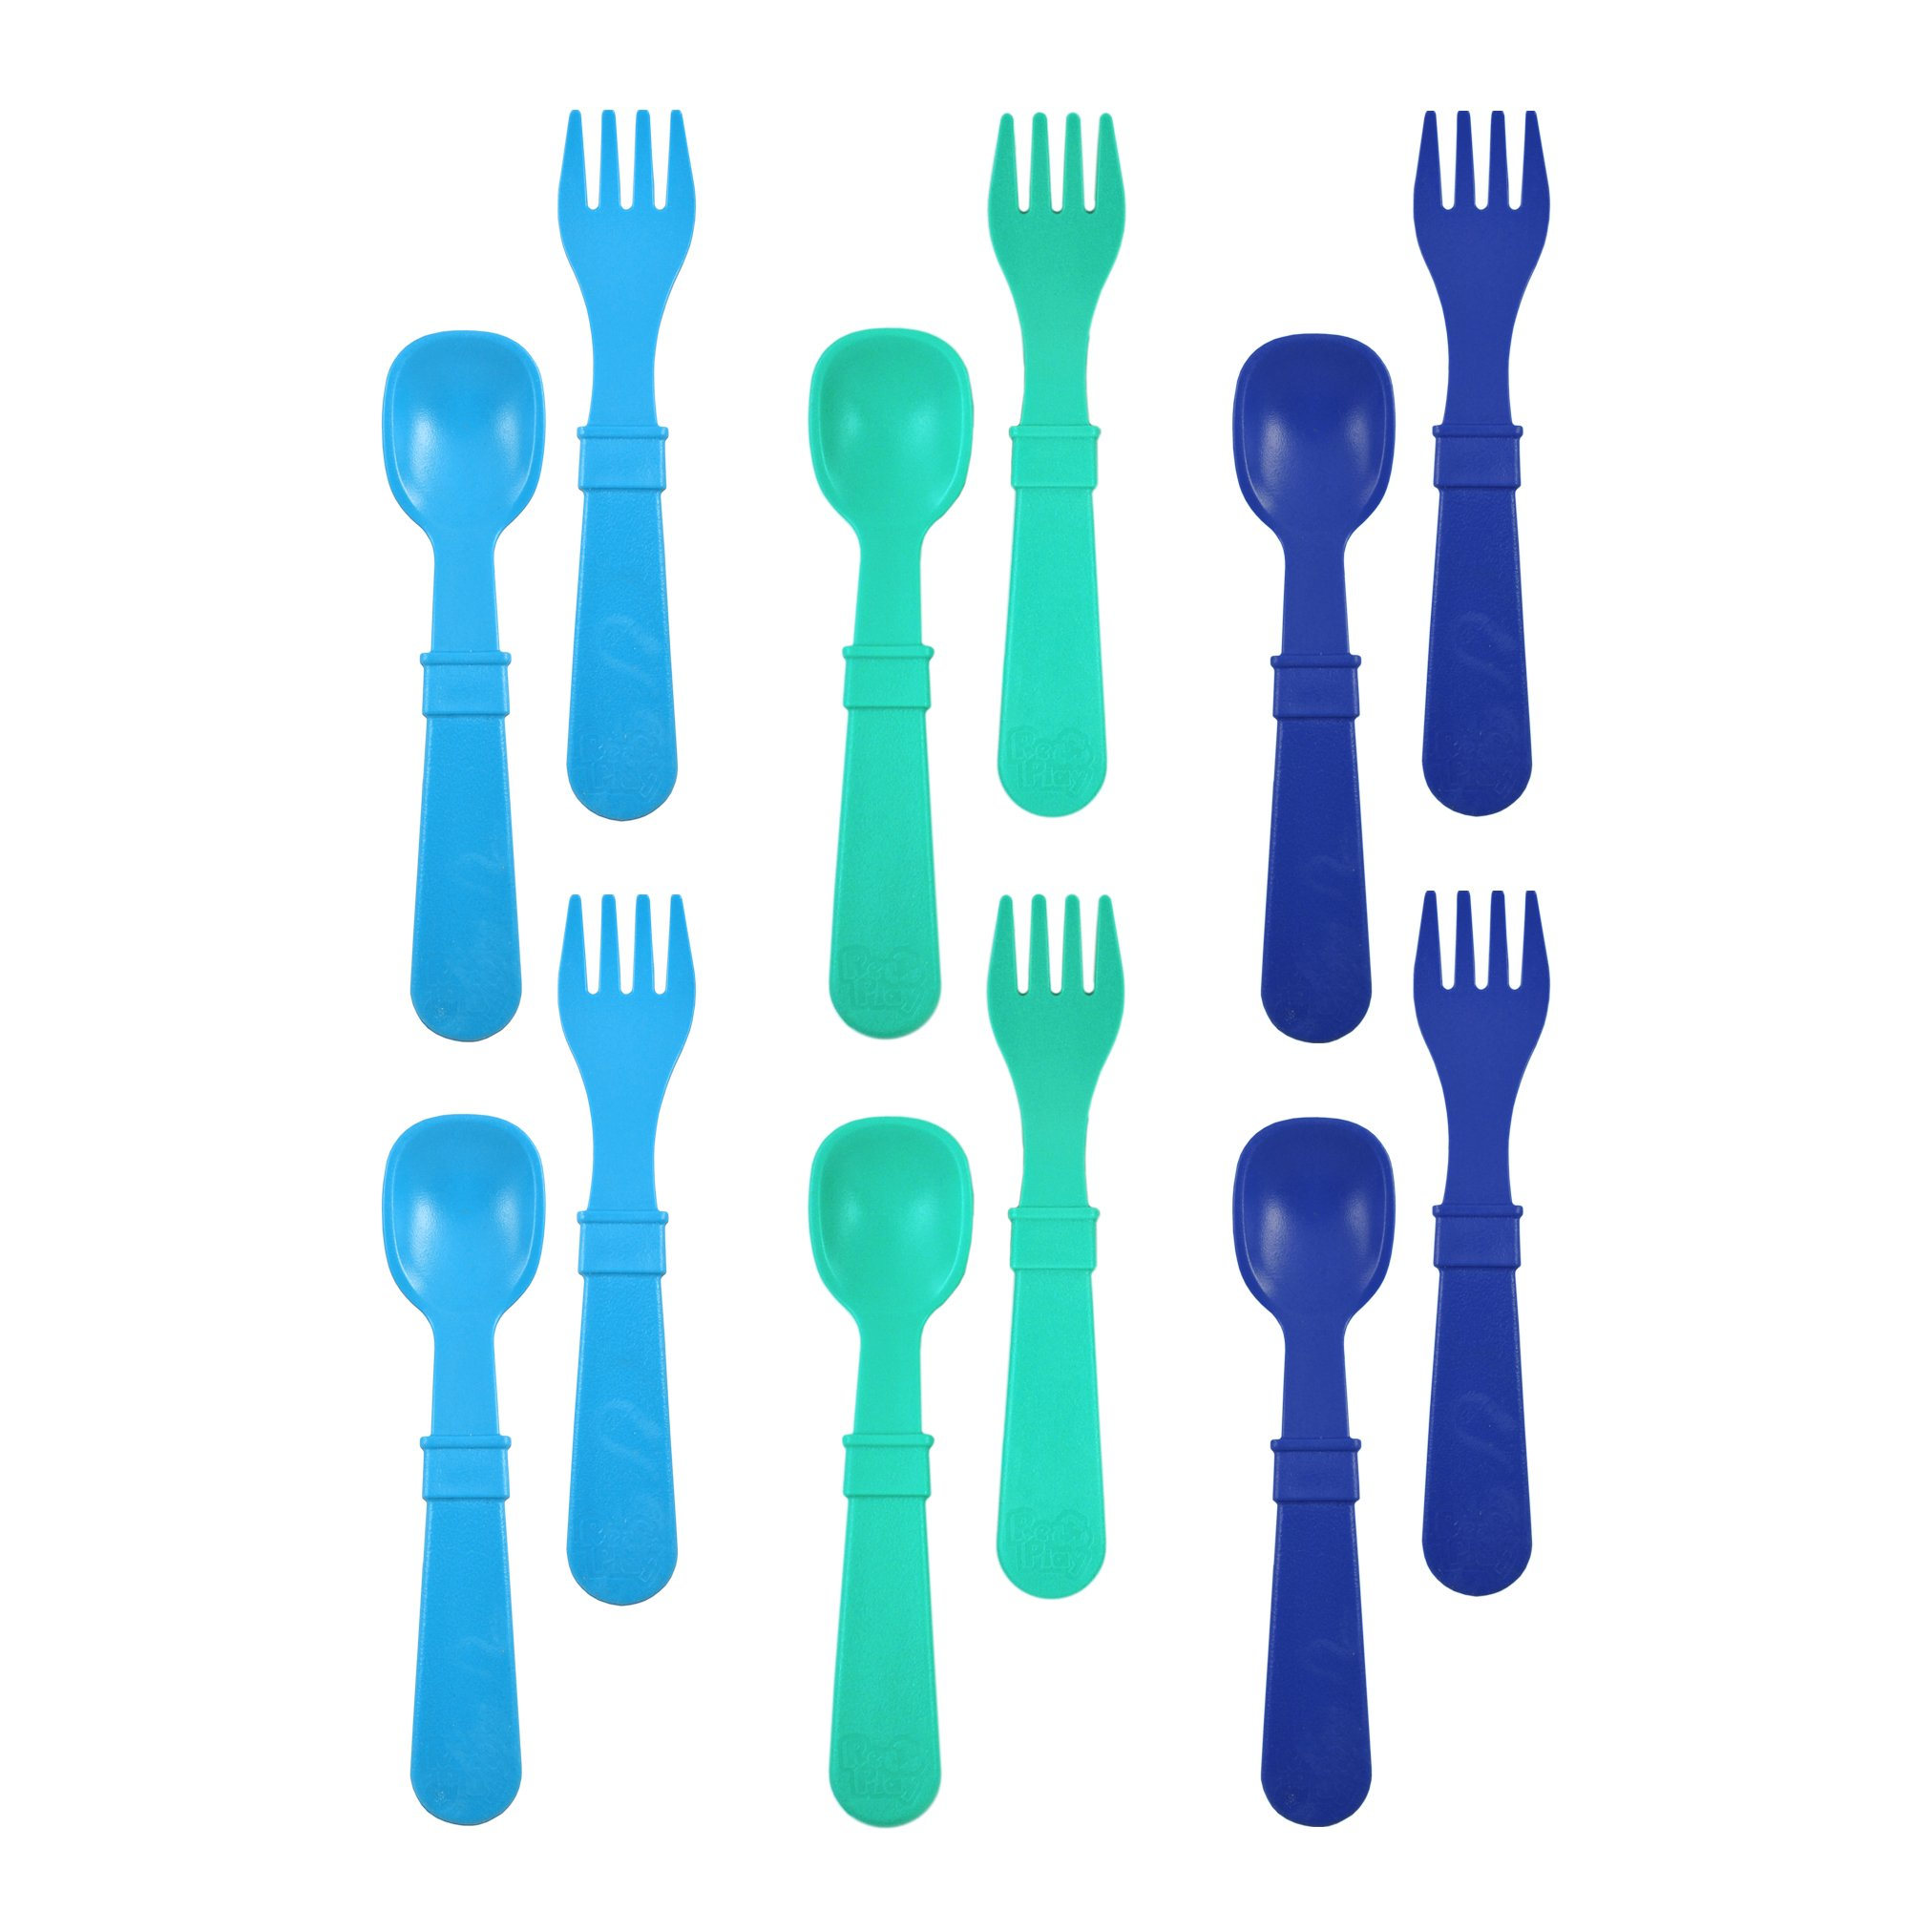 Re-Play Made in USA 12pk Toddler Feeding Utensils Spoon and Fork Set for Easy Baby, Toddler, Child Feeding - Sky Blue, Aqua, Navy Blue (True Blue) 6 Spoons/6 Forks